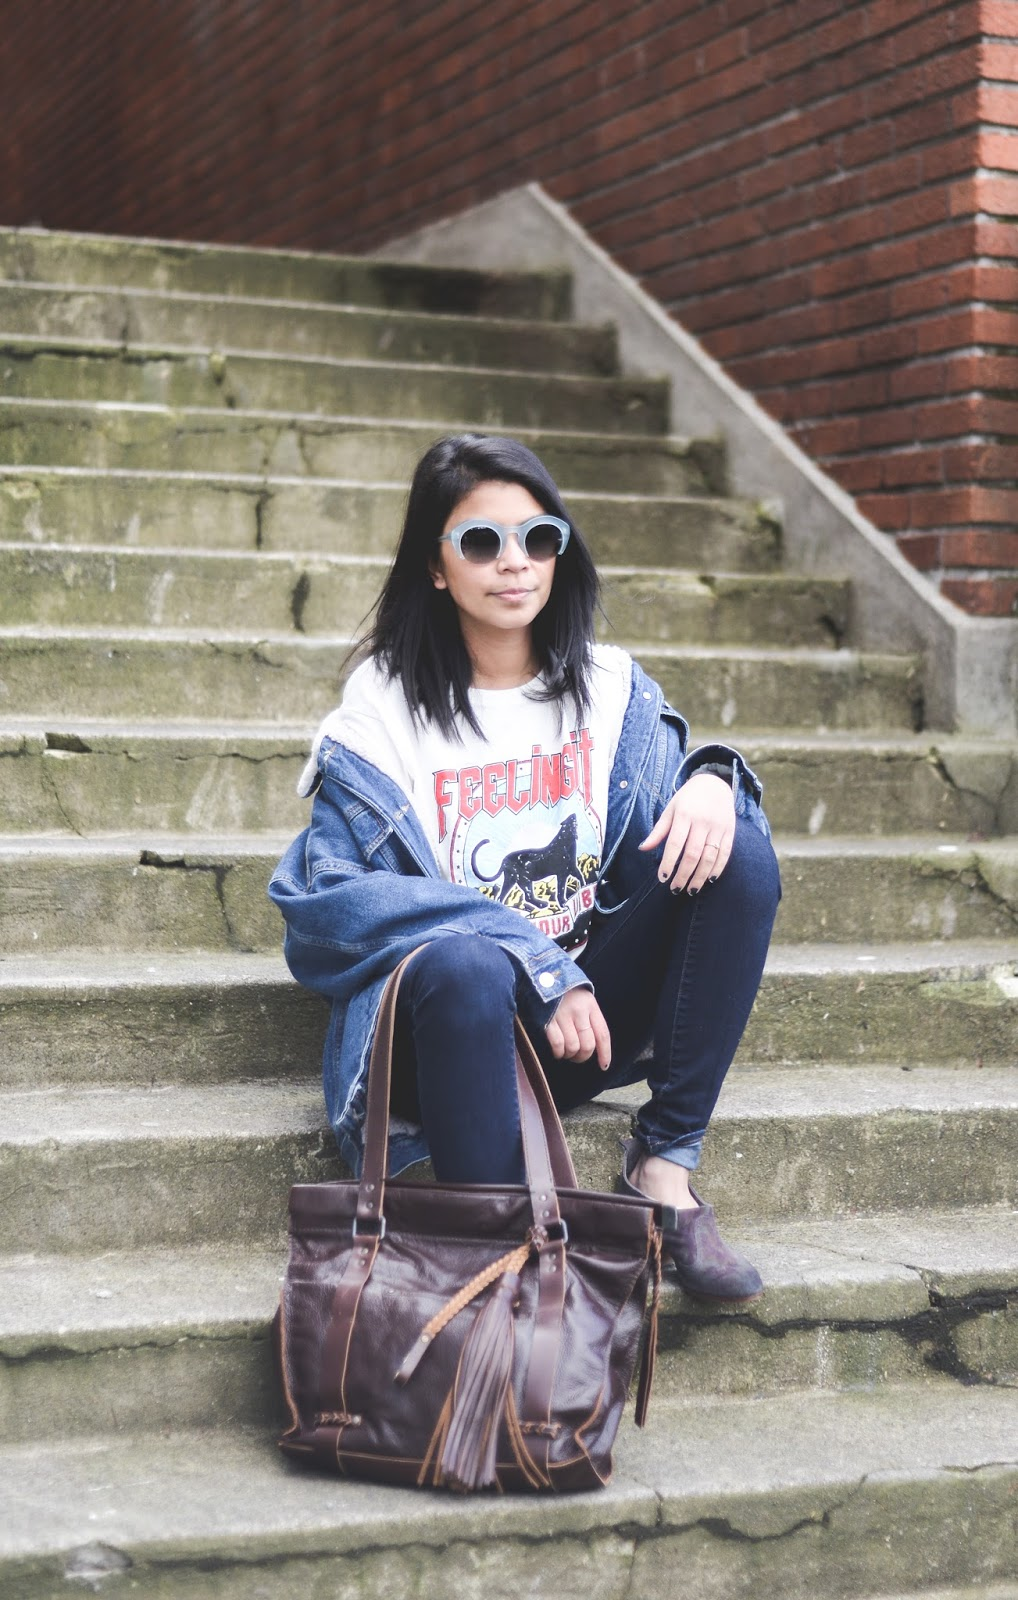 embrazio, leather tote bag, sunglasses, portland blogger, outfit of the day, spring outfit, graphic tee, denim jacket, 2017,